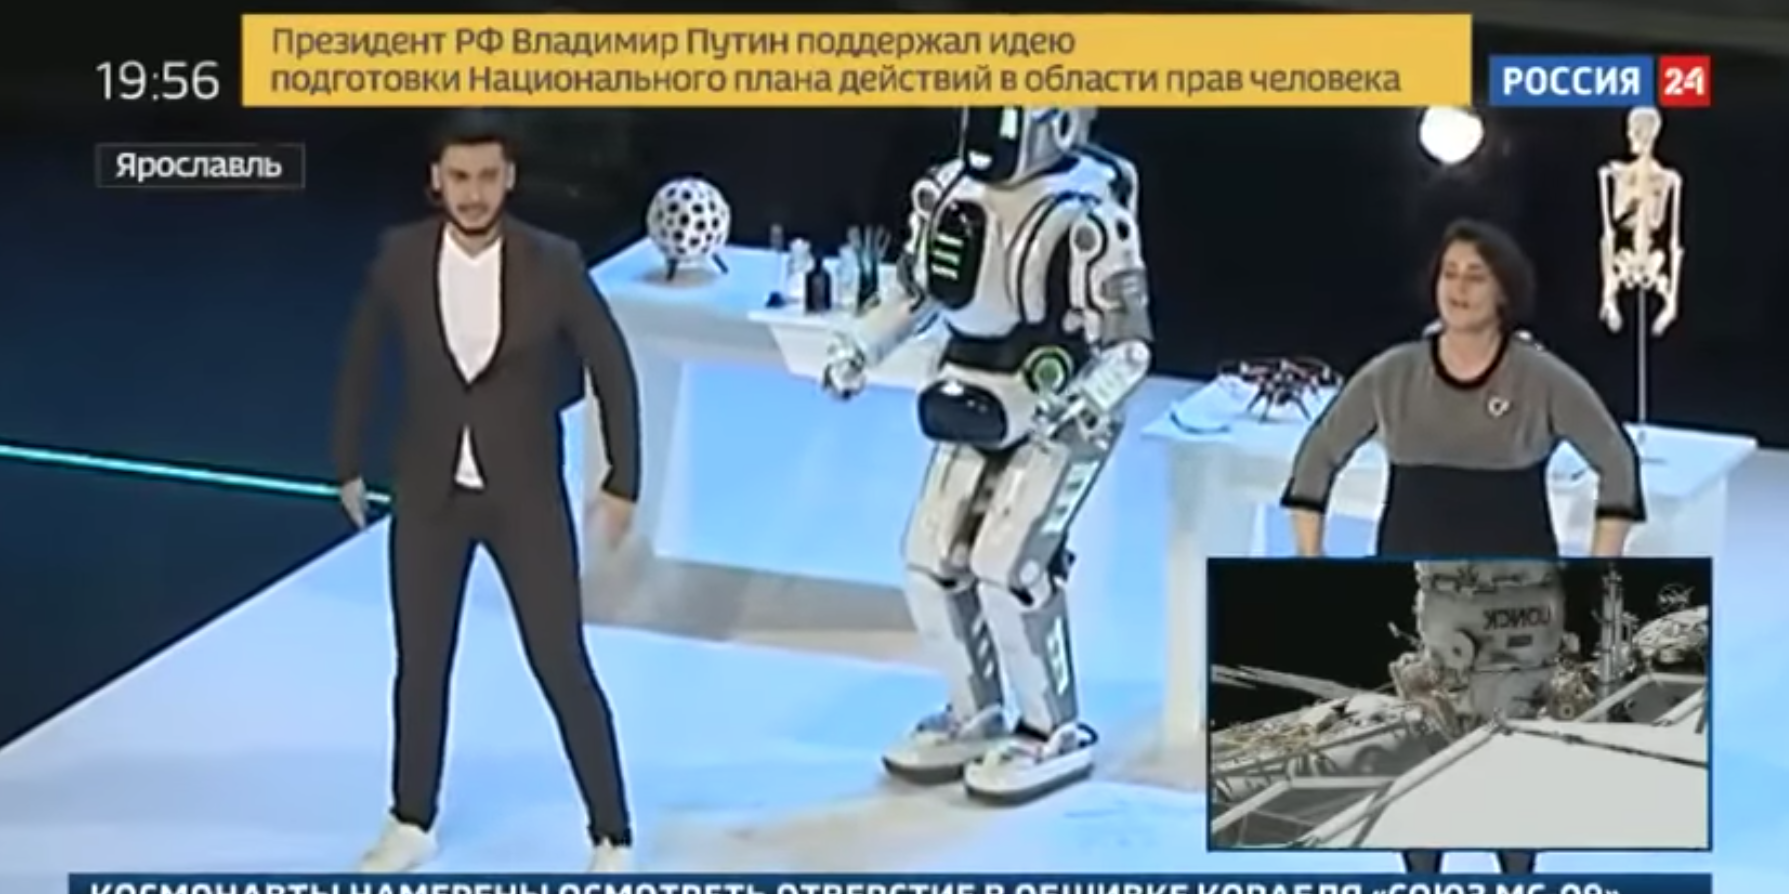 Robot At Putin Youth Forum Praised As High Tech Is Really Just A